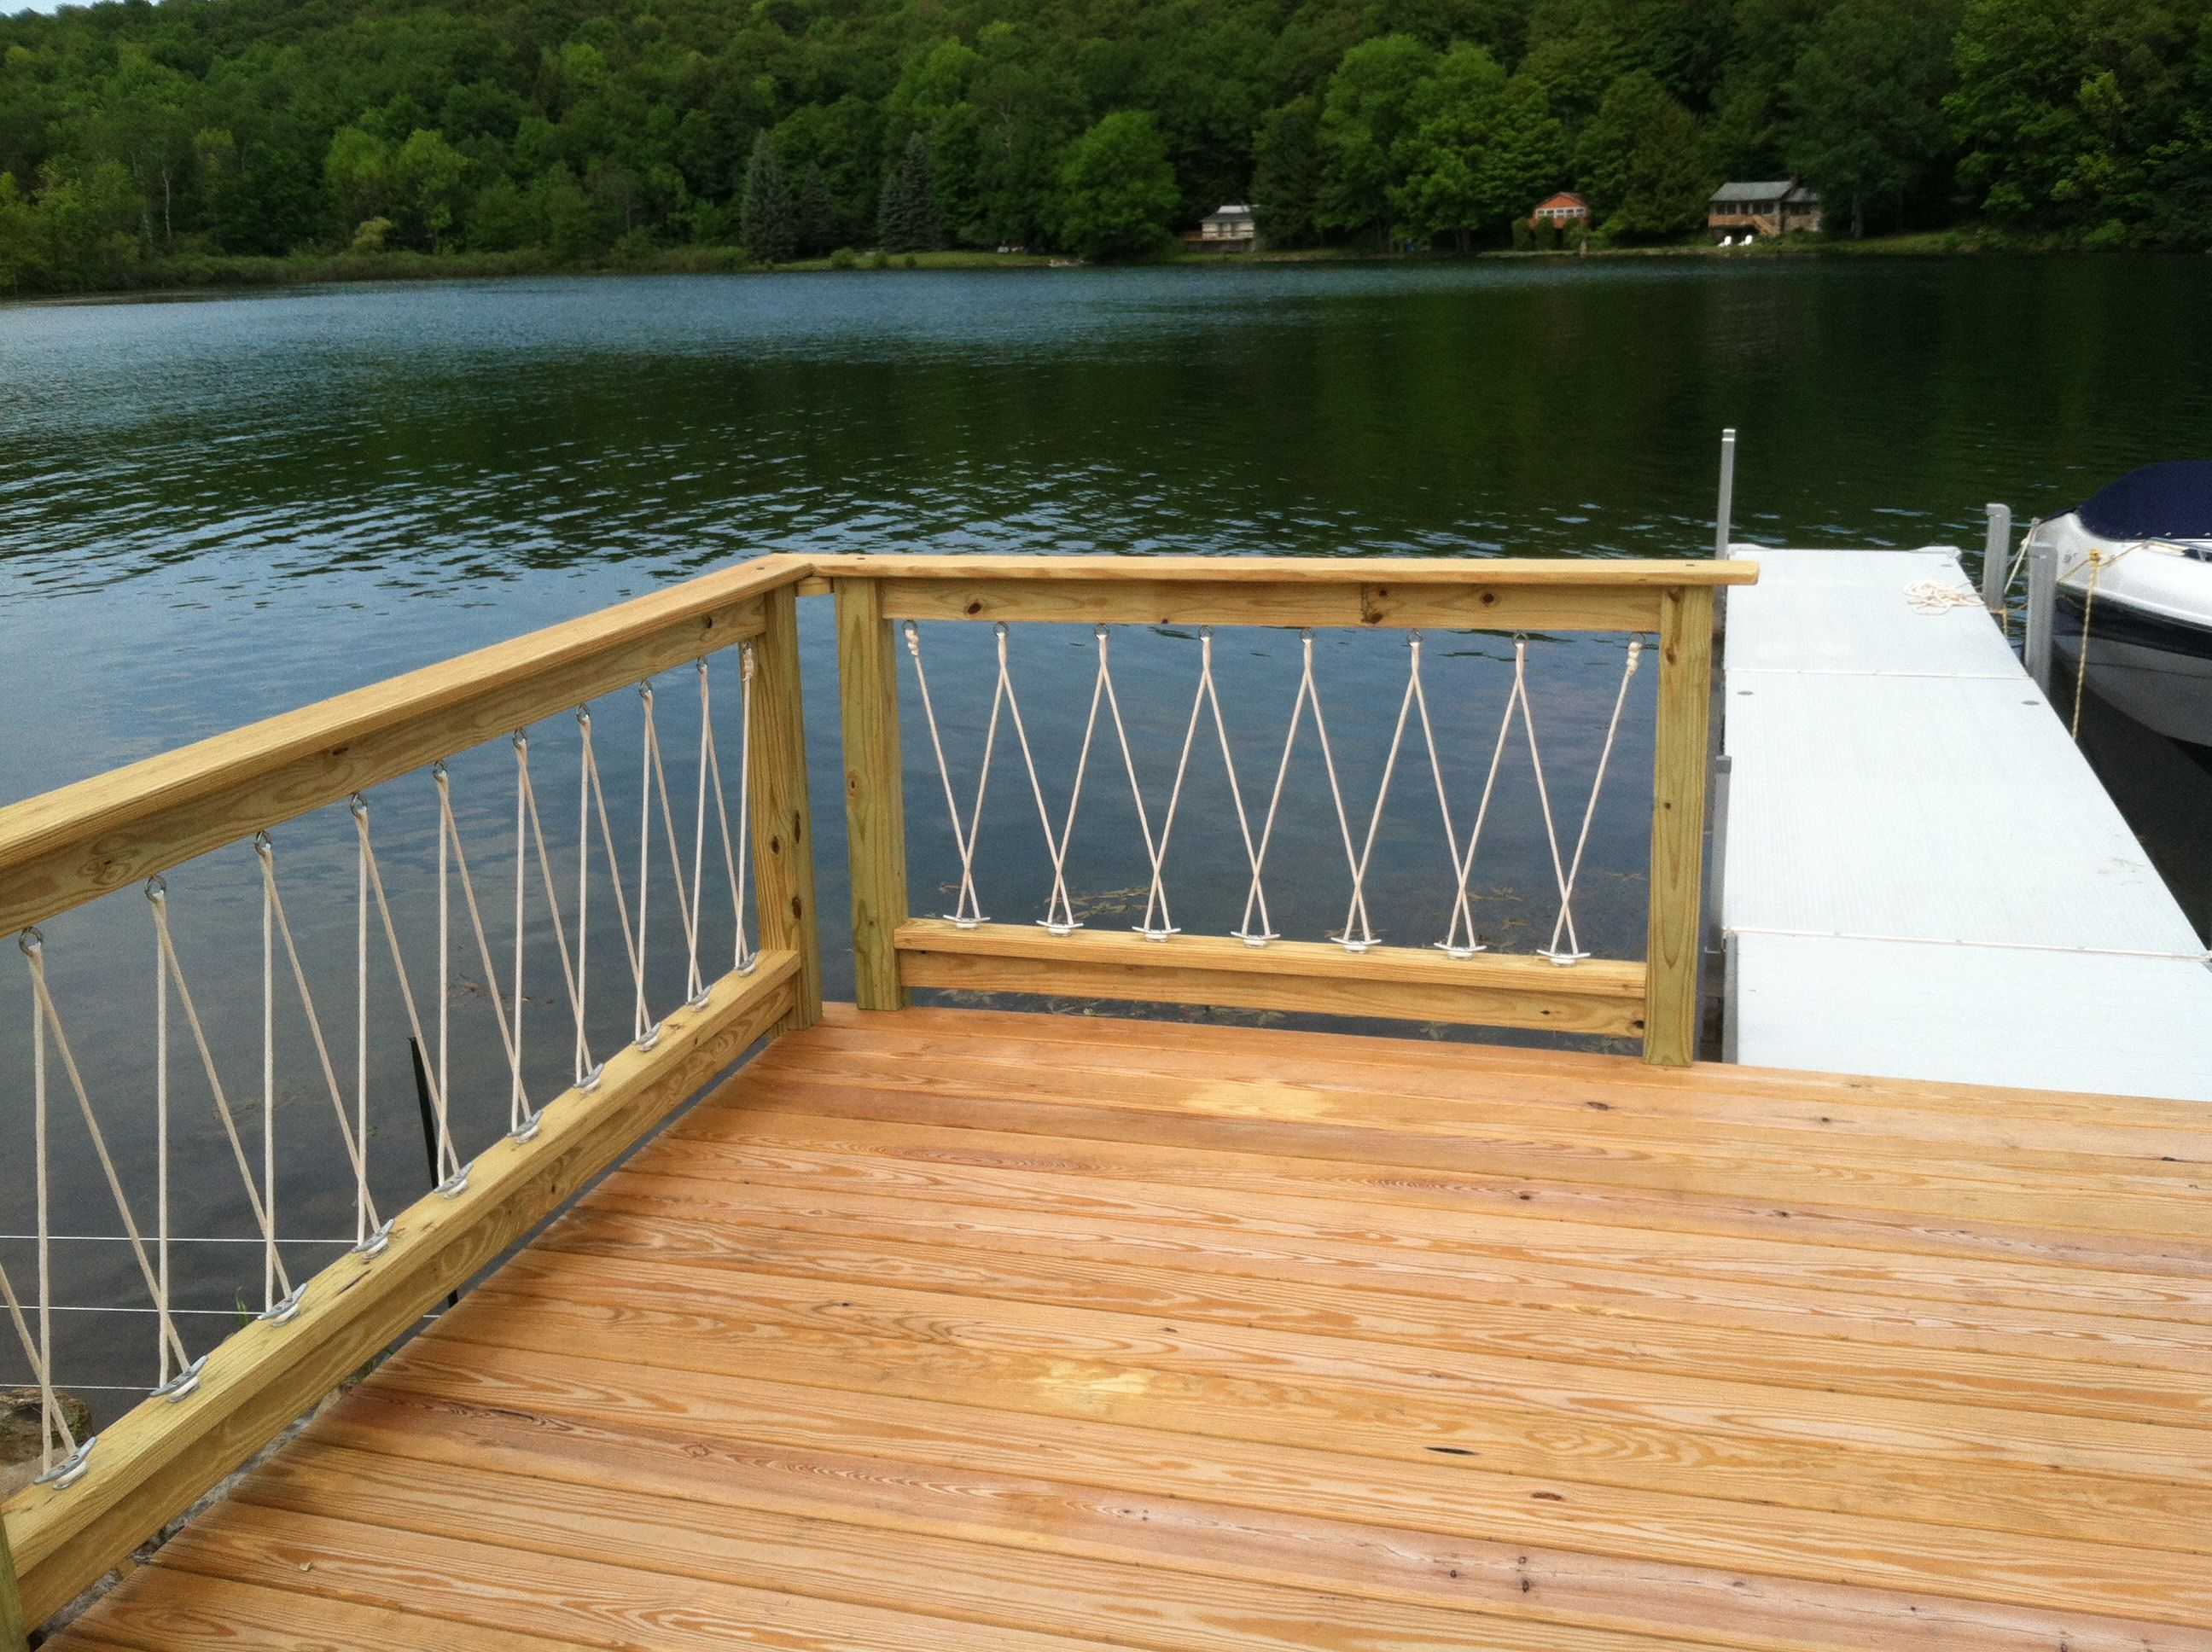 tree house plans, lake lodge plans, lake gaston boat house, lake house snow, luxury houseboat floor plans, lake house boat designs, lake house kits, small houseboat plans, lake gaston waterfront rentals, custom houseboat plans, small 10x20 pool house plans, trailerable houseboat plans, lake house with boat garage, lake house mansions, lake house furniture, house barge plans, lake havasu houseboats, lake house with boat house, lake sloop plans, on rail boat lake house plans